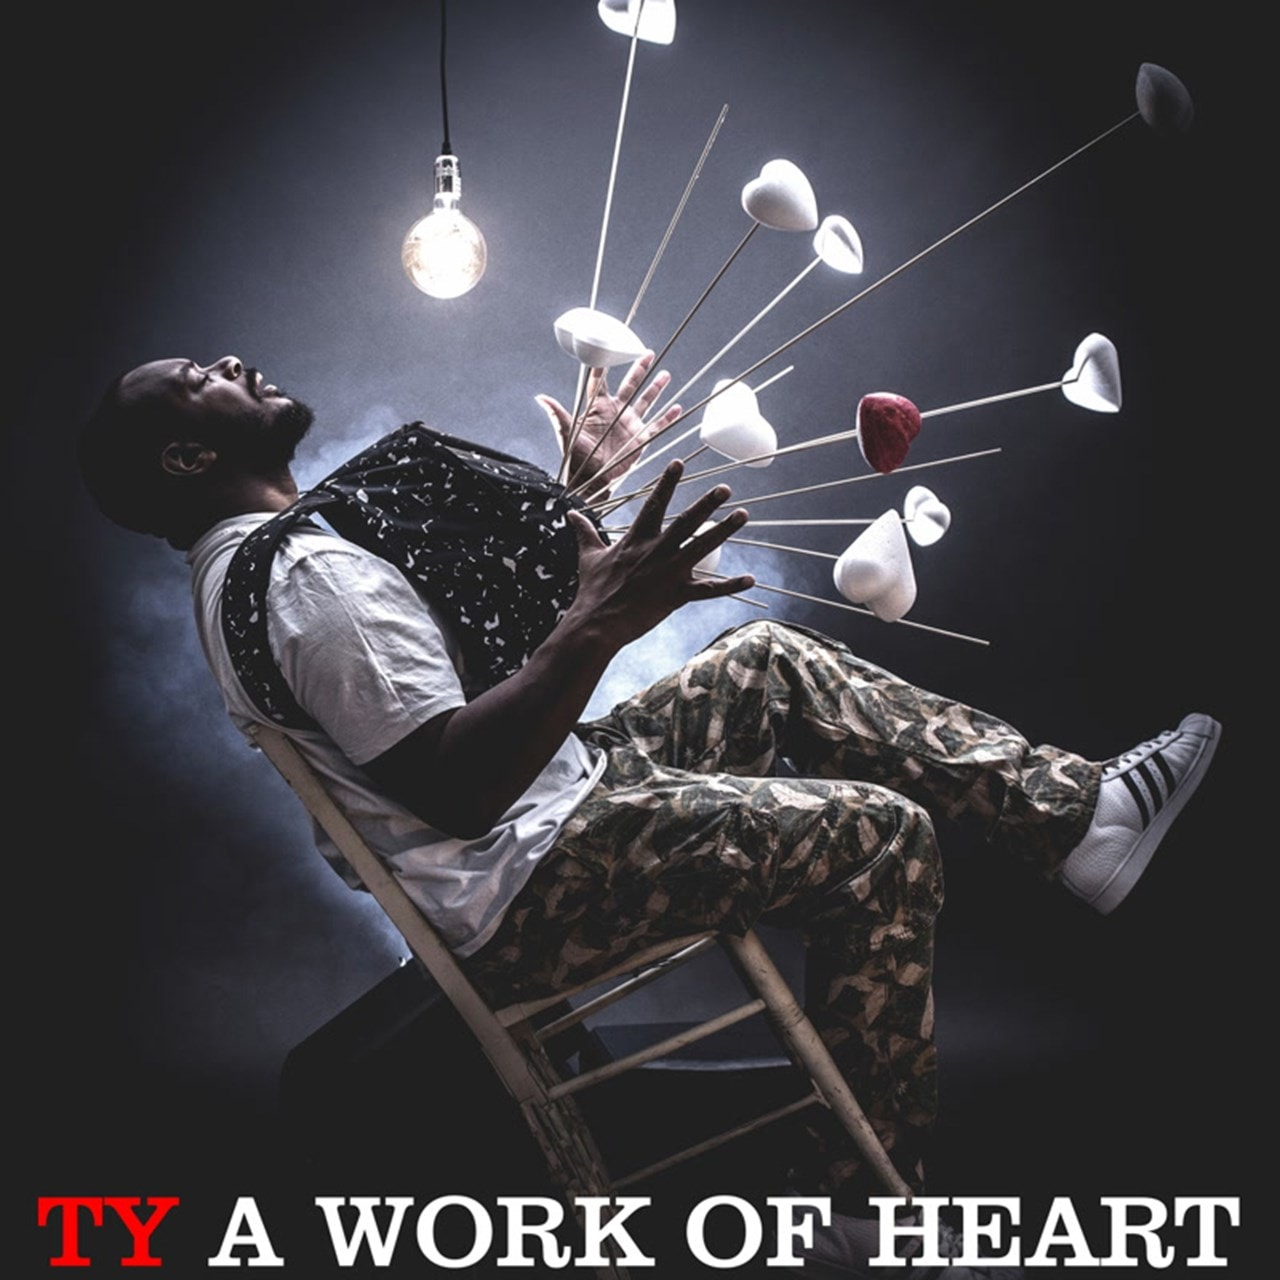 A Work of Heart - 1